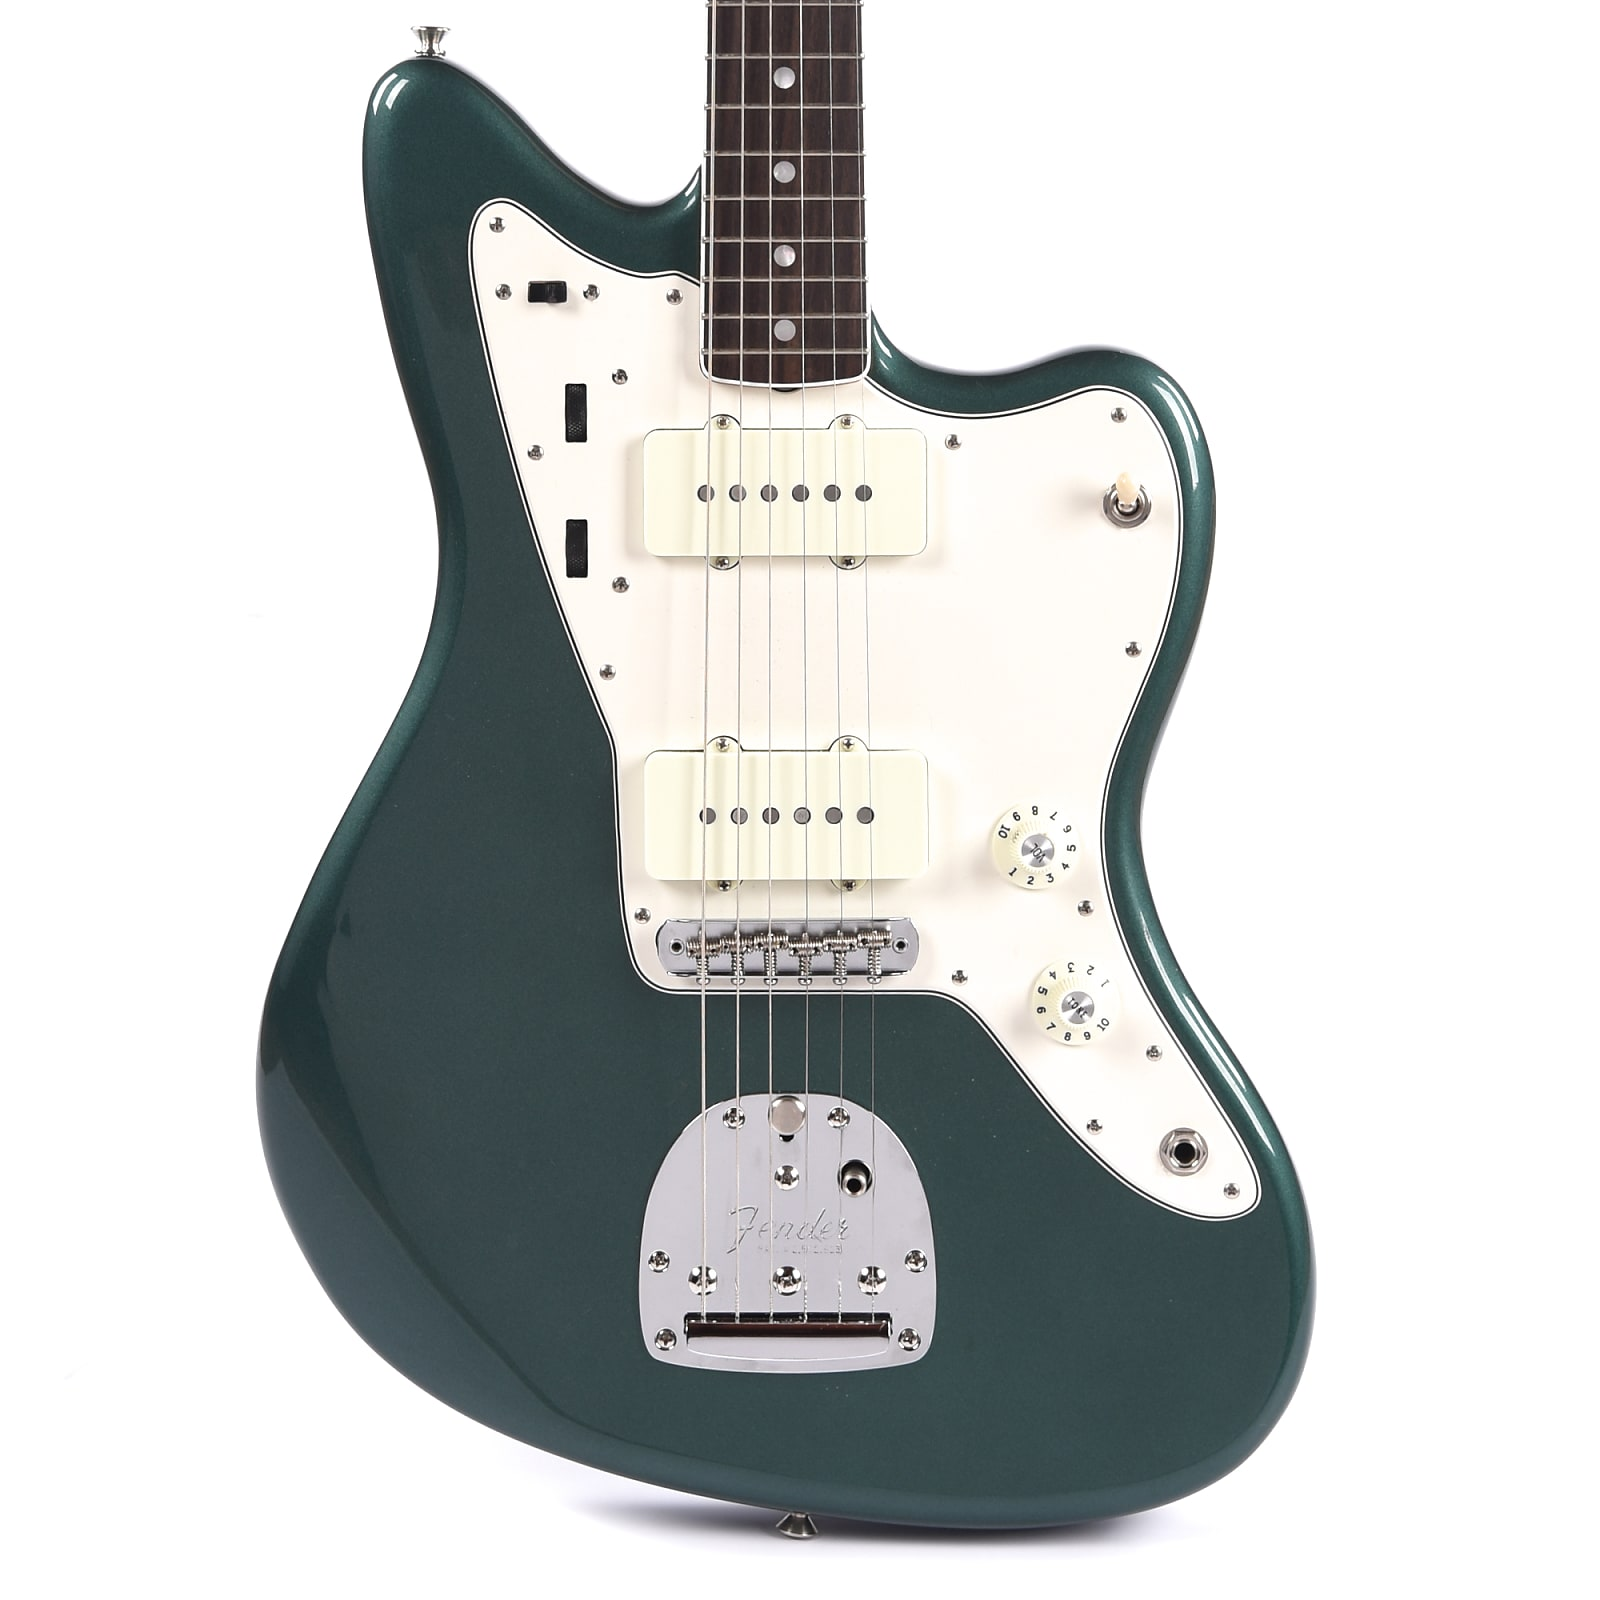 Fender American Original Jazzmaster Sherwood Green Metallic w/Painted Headcap (CME Exclusive)